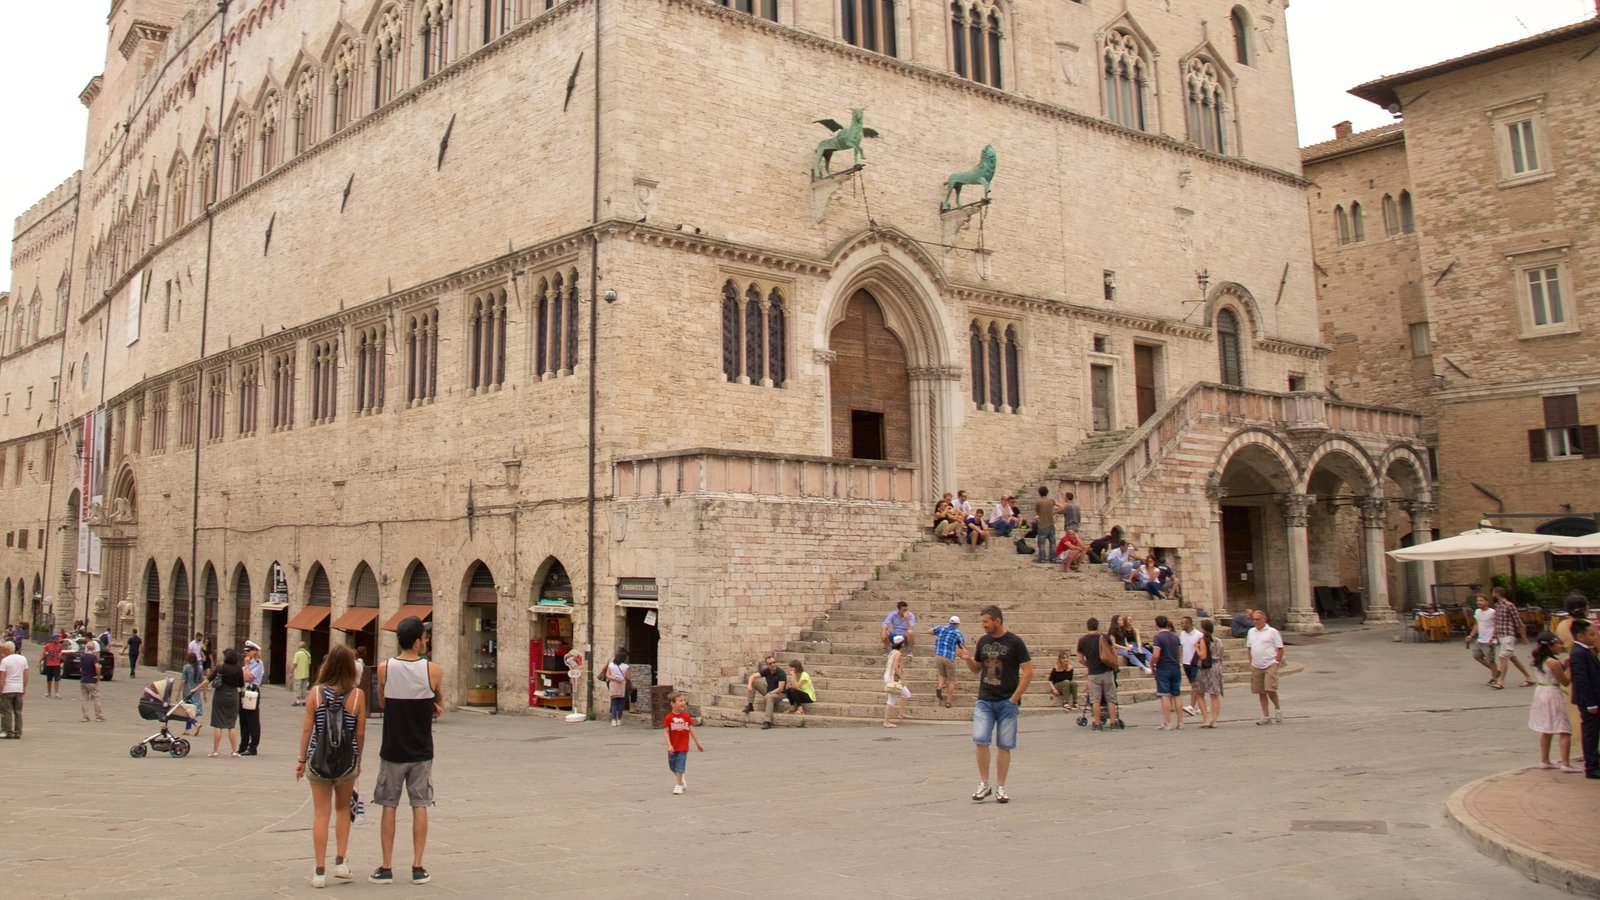 Palazzo dei Priori which includes heritage architecture and a square or plaza as well as a large group of people